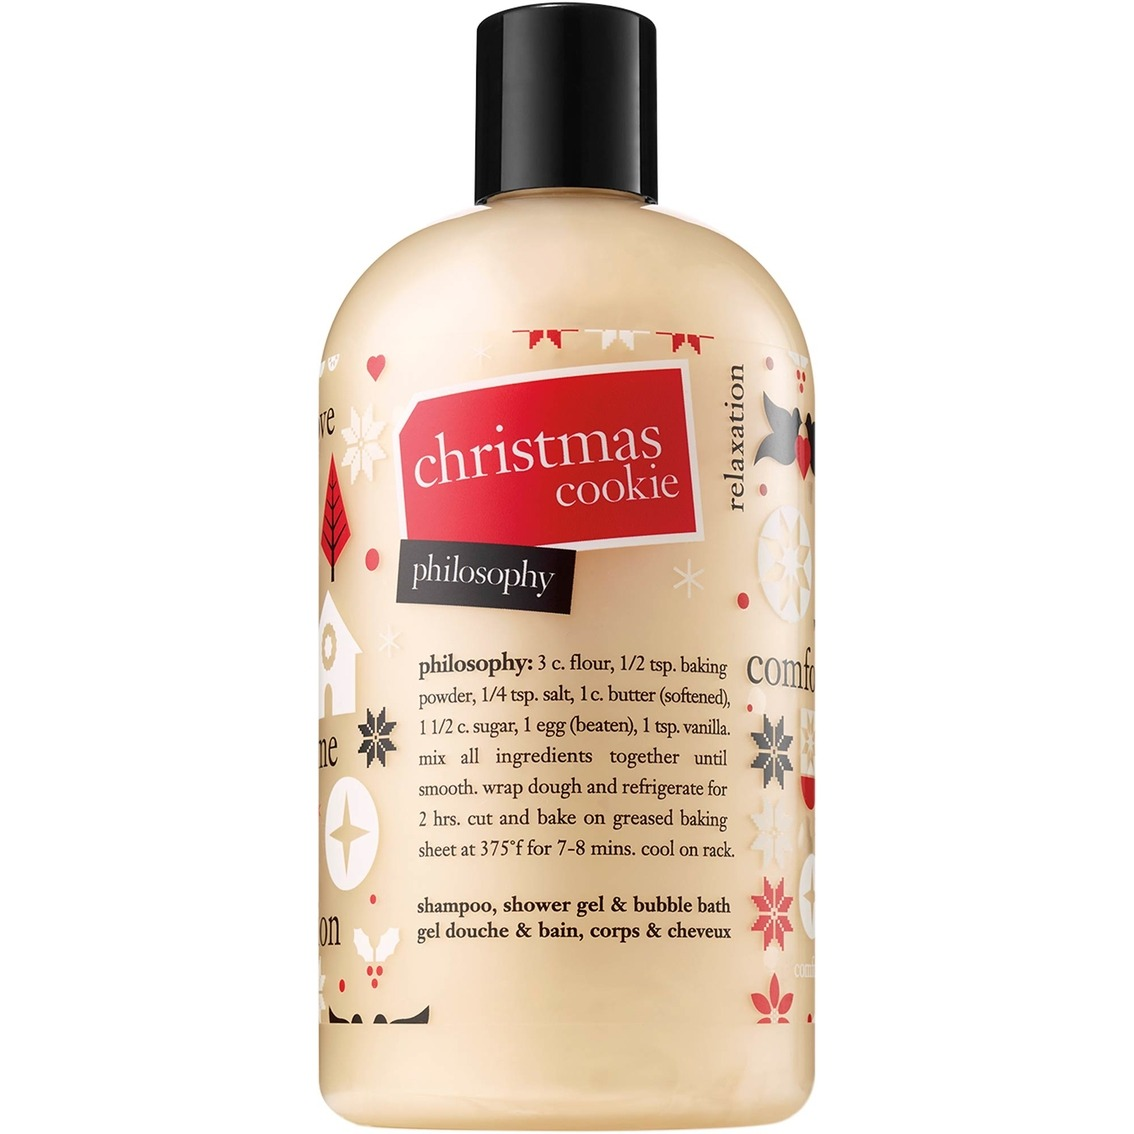 Philosophy Christmas Cookie Shampoo, Shower Gel And Bubble Bath